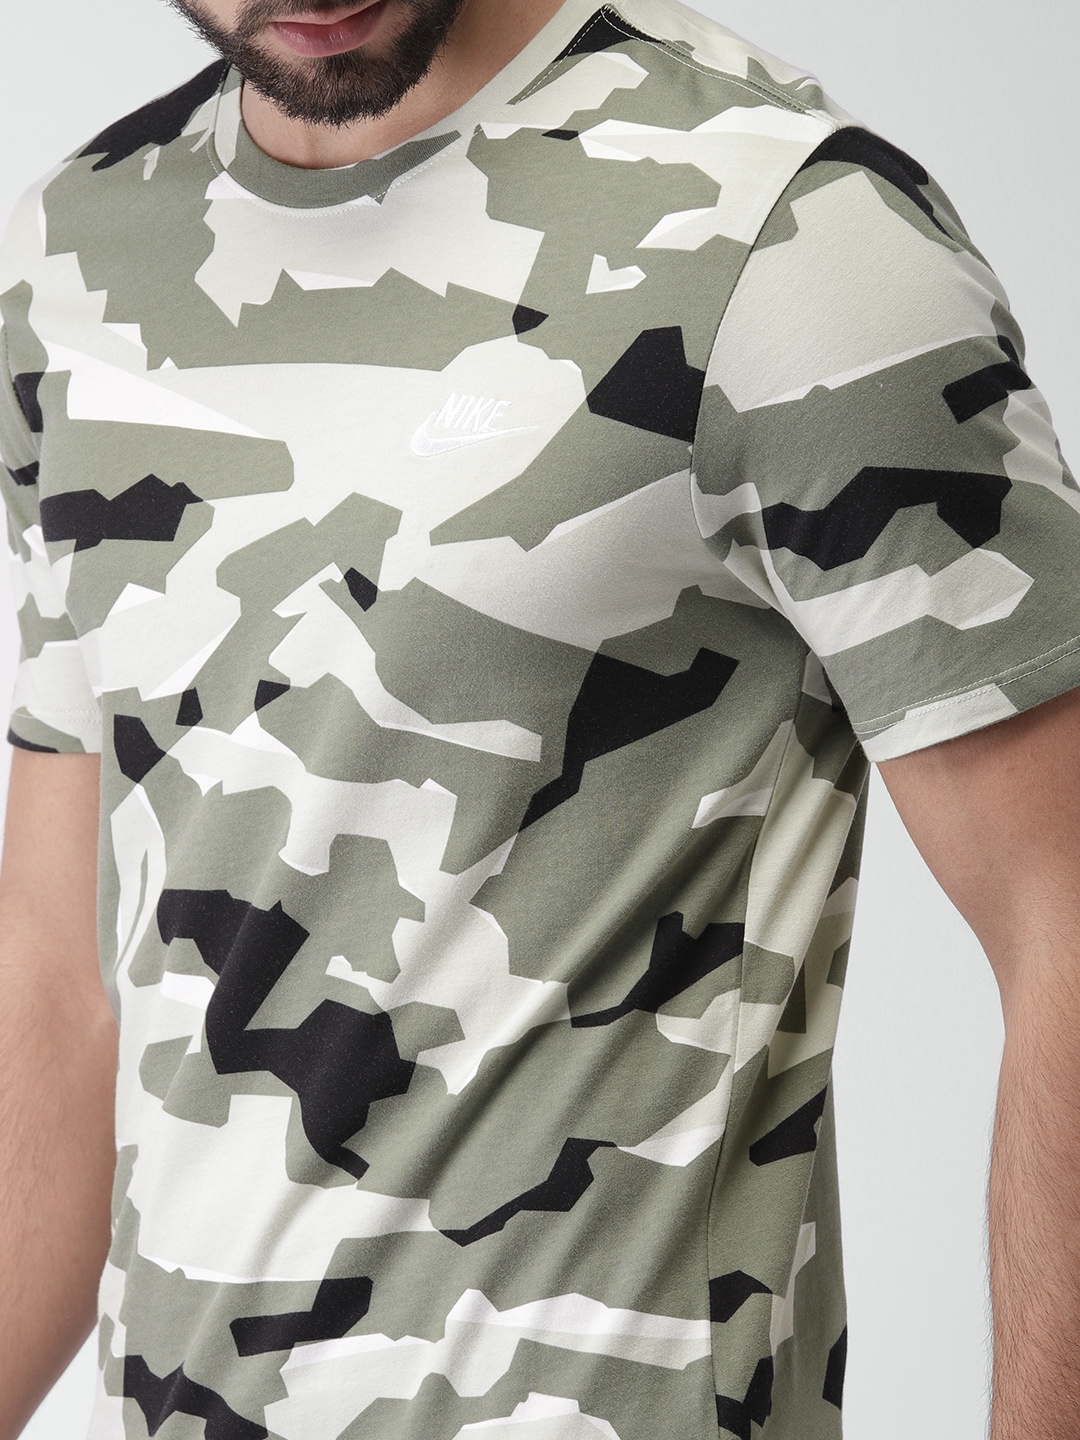 5e6a46d9ca19 Buy Nike Men Olive Green   Black Printed AS NSW CAMO PACK 1 Round ...